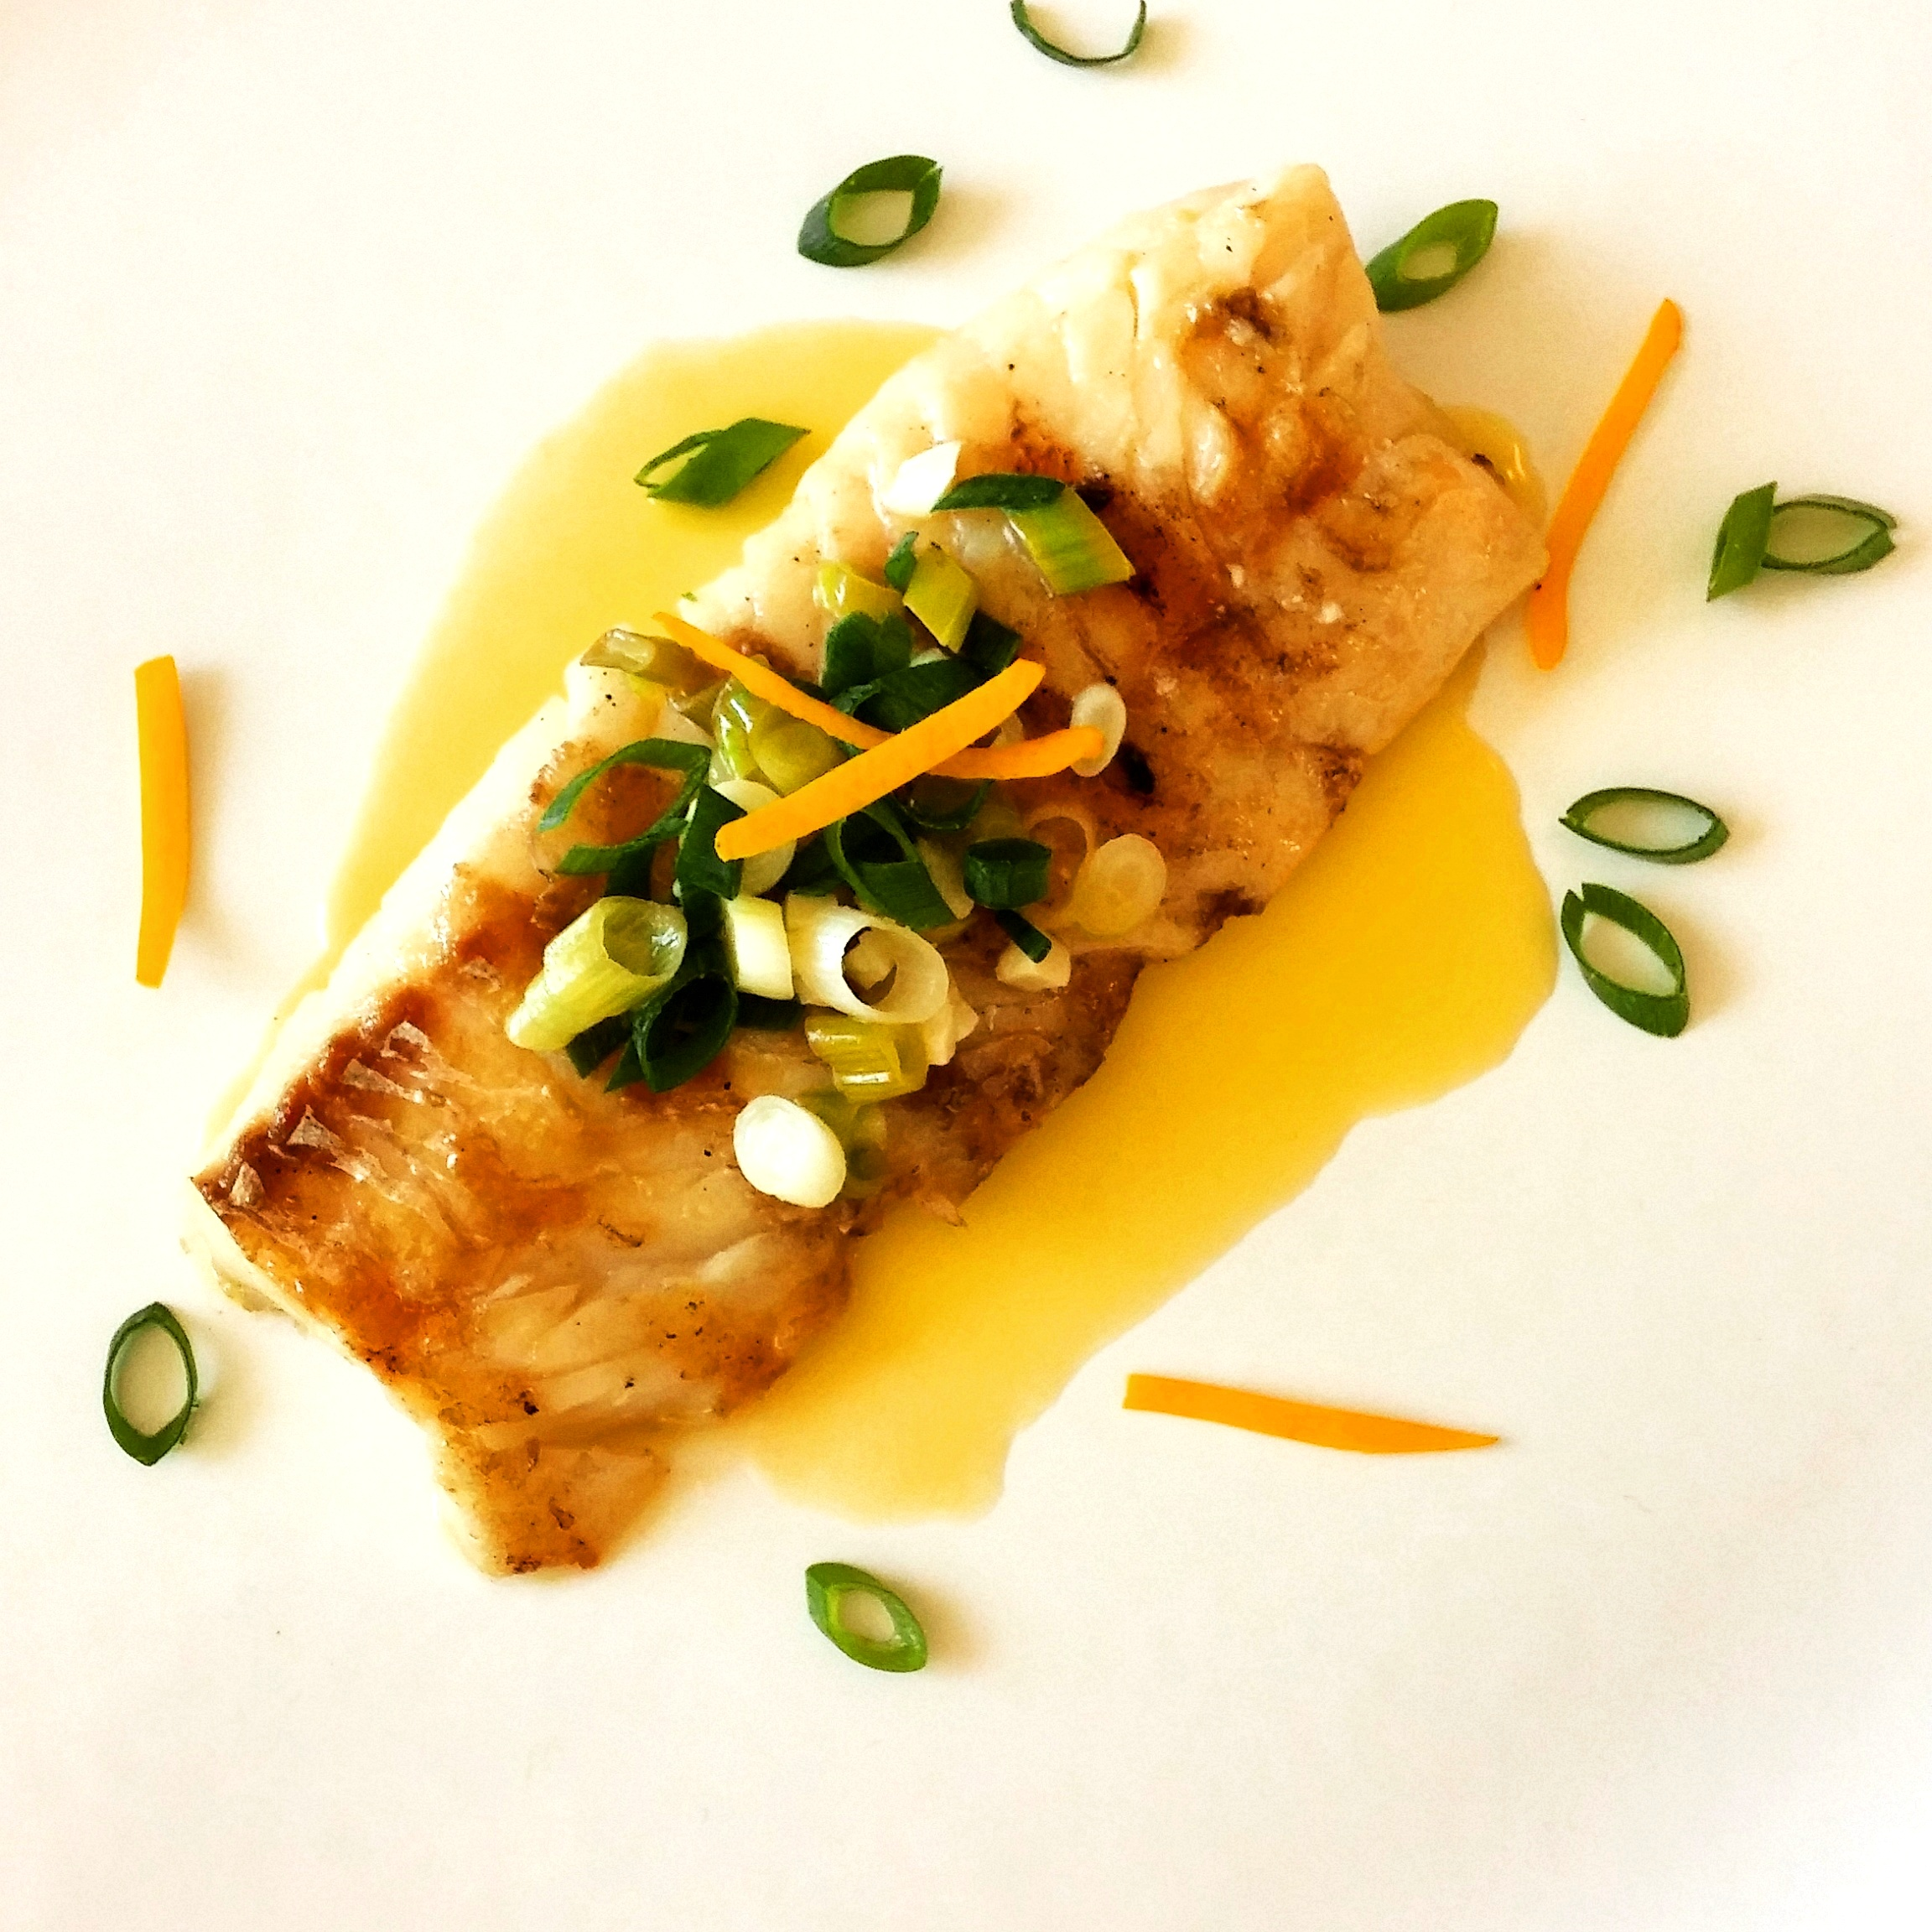 Cod fish with Meyer Lemon Butter Sauce